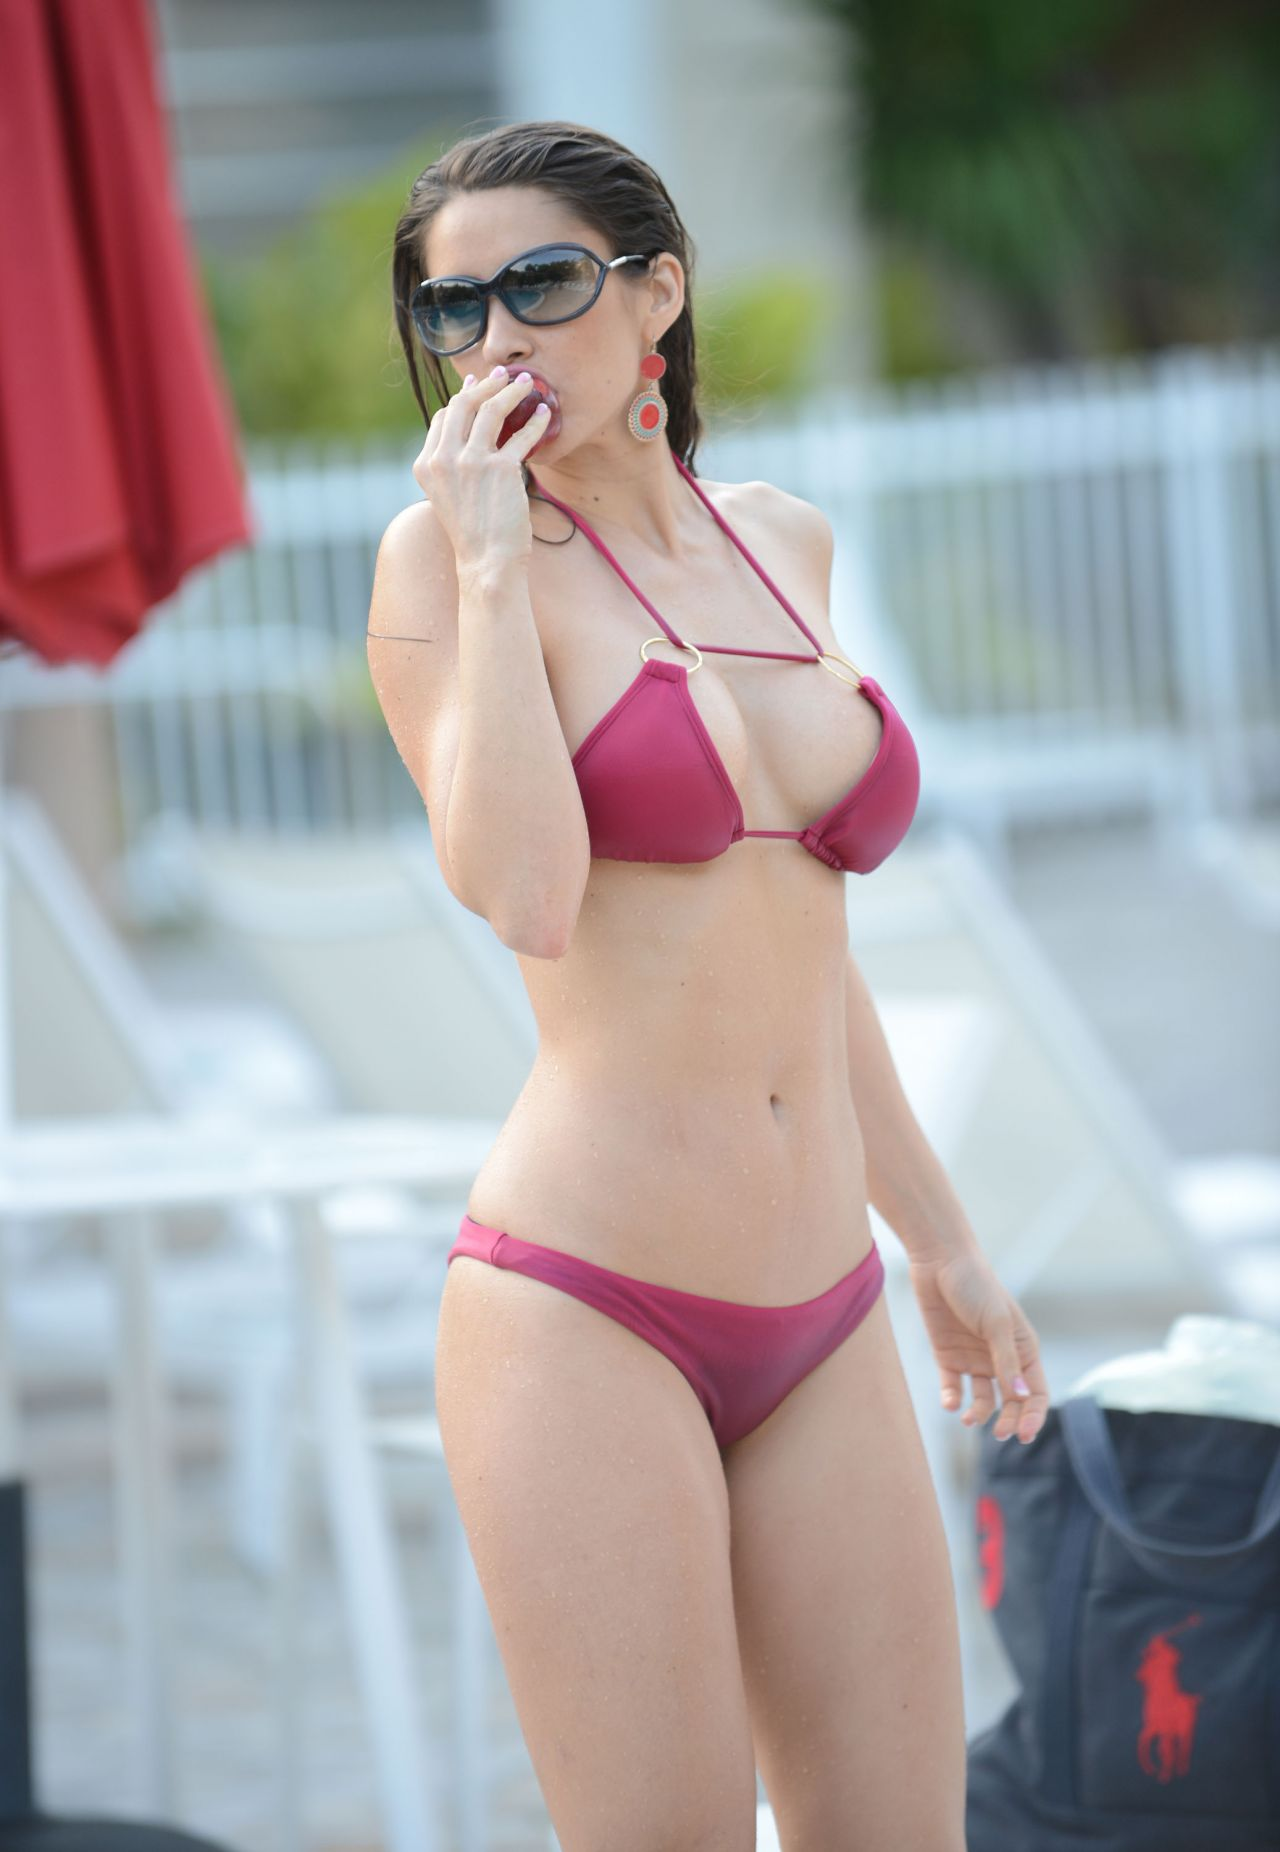 Anais Zanotti Bikini Candids - at Poolside in Miami, March 2014